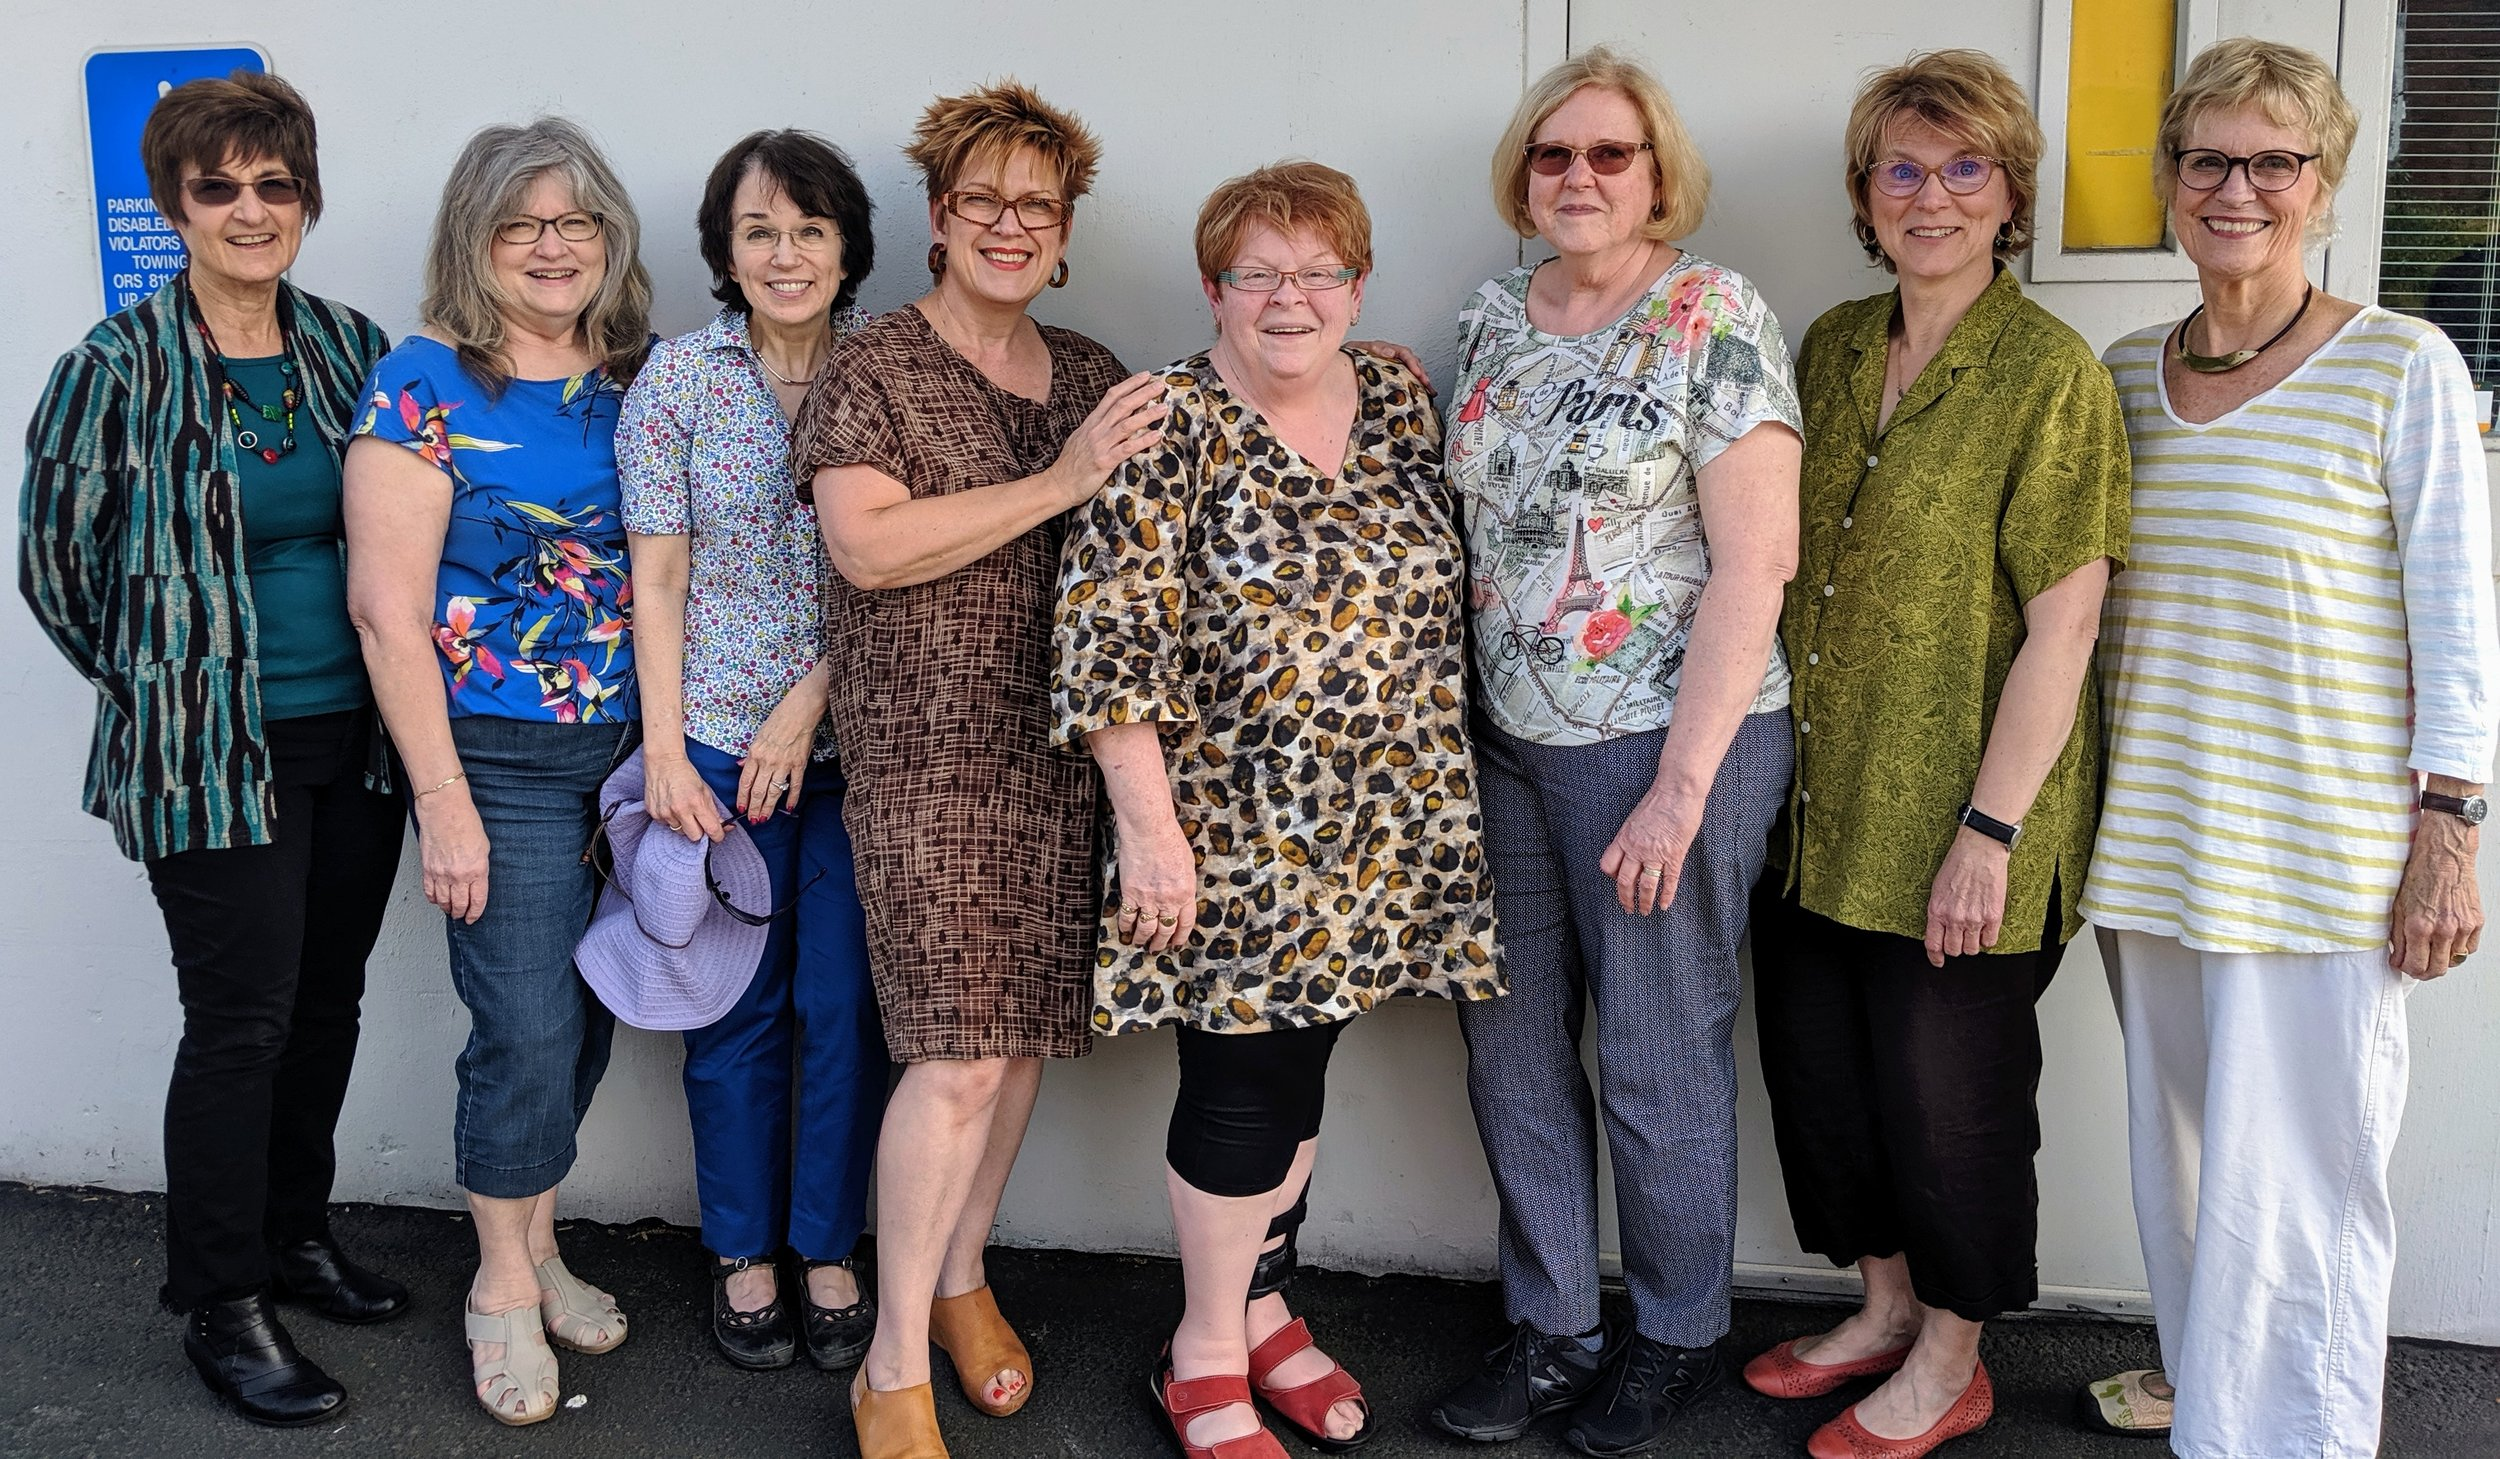 Columbia River Sewing: Such a fun group